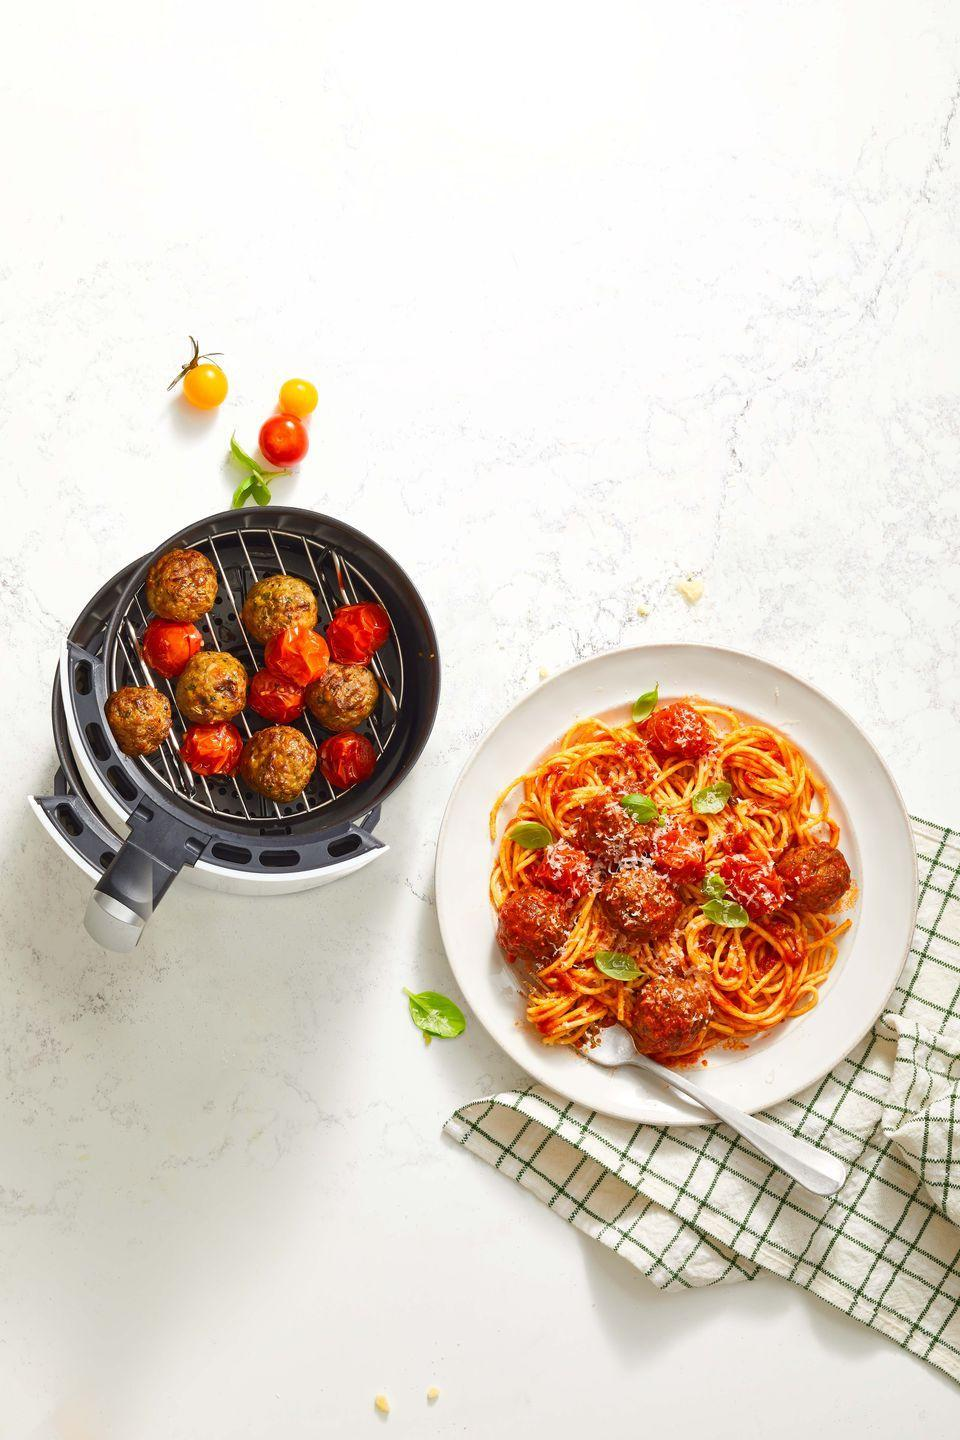 """<p>Forget frying meatballs on the stovetop (so messy!) or baking them in the oven—air fryer meatballs are a cinch to make and even easier to clean up.</p><p><em><a href=""""https://www.goodhousekeeping.com/food-recipes/easy/a37145375/air-fryer-meatballs-recipe/"""" rel=""""nofollow noopener"""" target=""""_blank"""" data-ylk=""""slk:Get the recipe for Spaghetti and Air Fryer Meatballs »"""" class=""""link rapid-noclick-resp"""">Get the recipe for Spaghetti and Air Fryer Meatballs »</a></em></p>"""